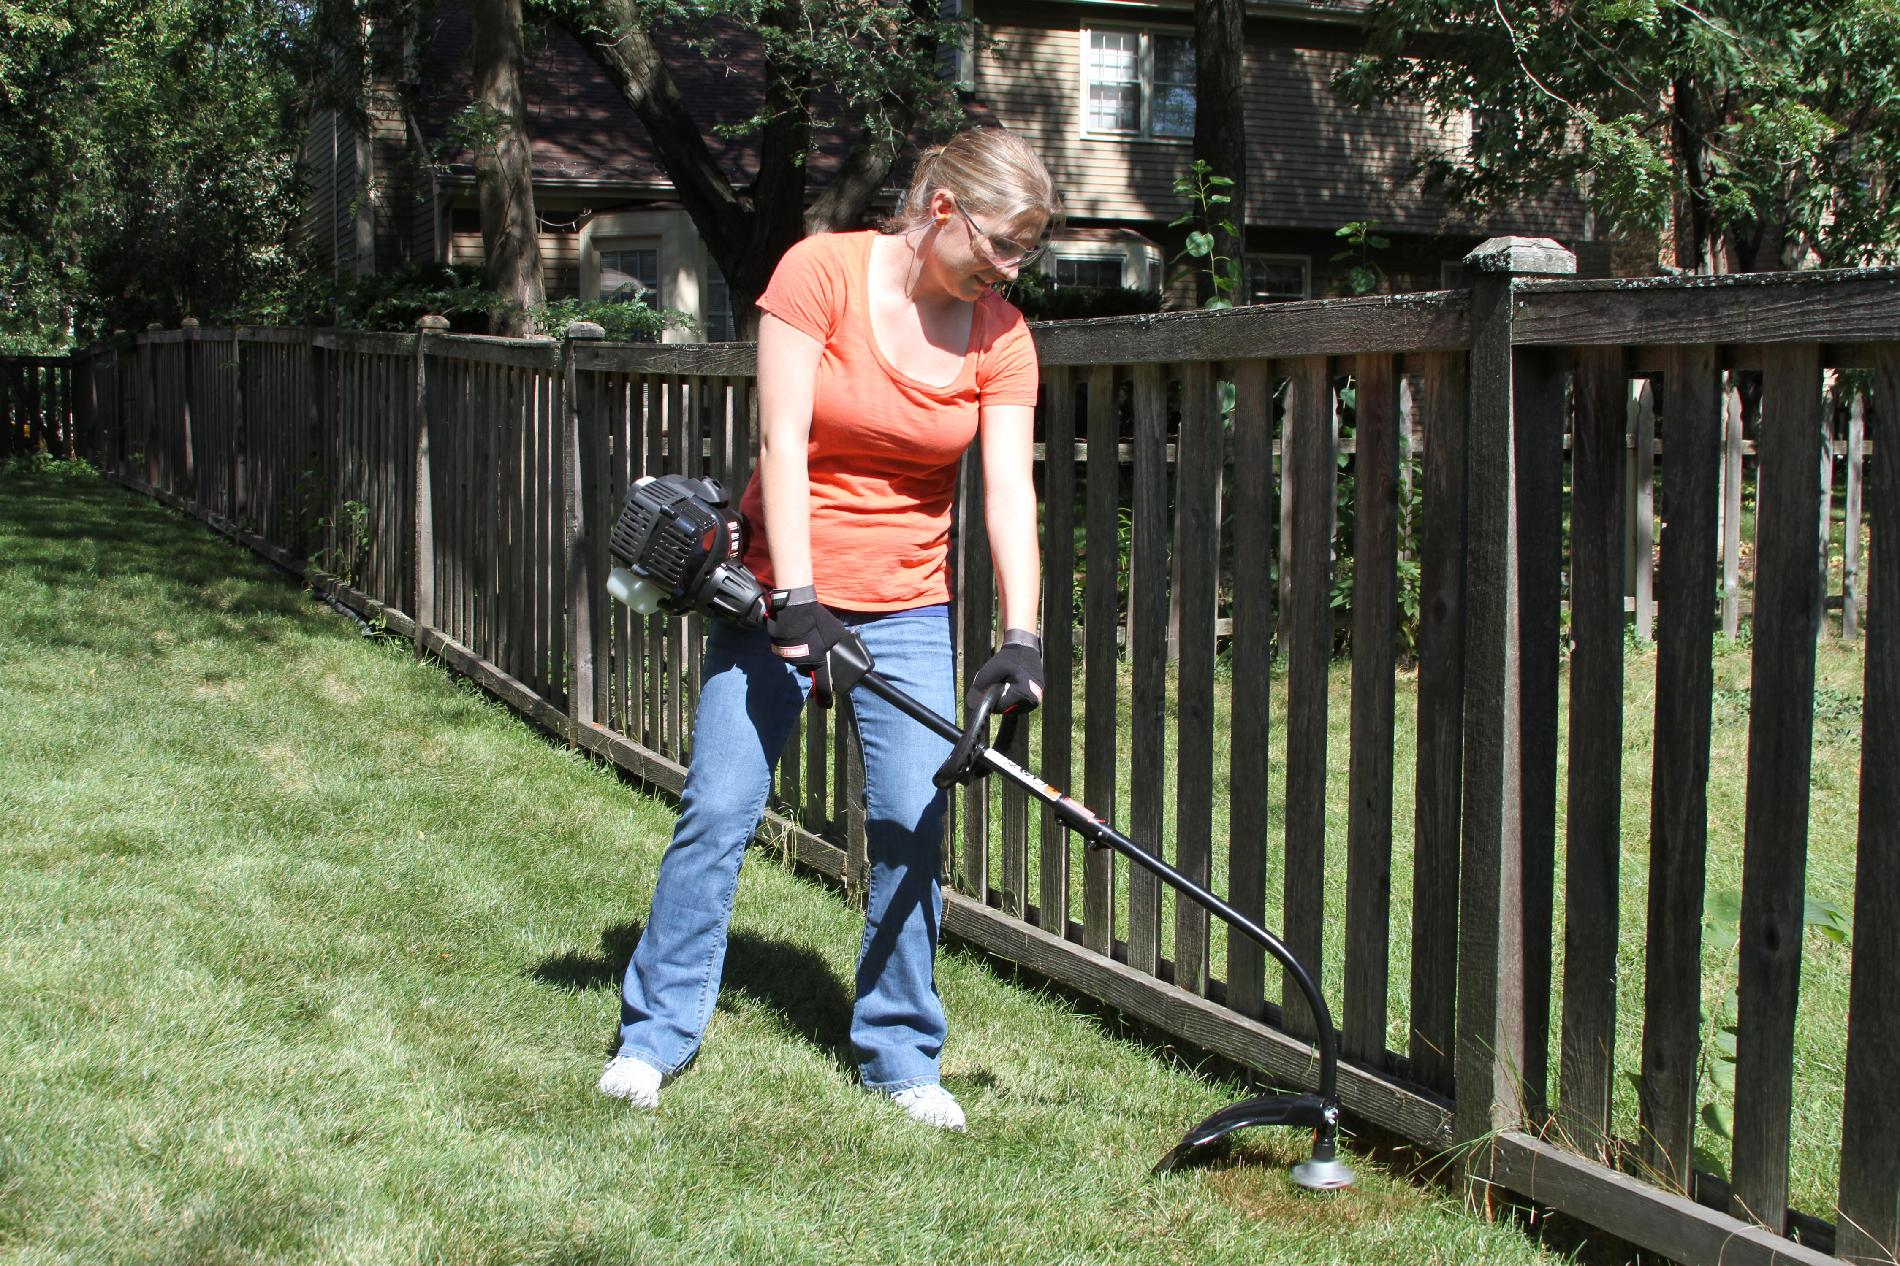 Craftsman 27cc 2-Cycle Gas Powered Lawn Trimmer